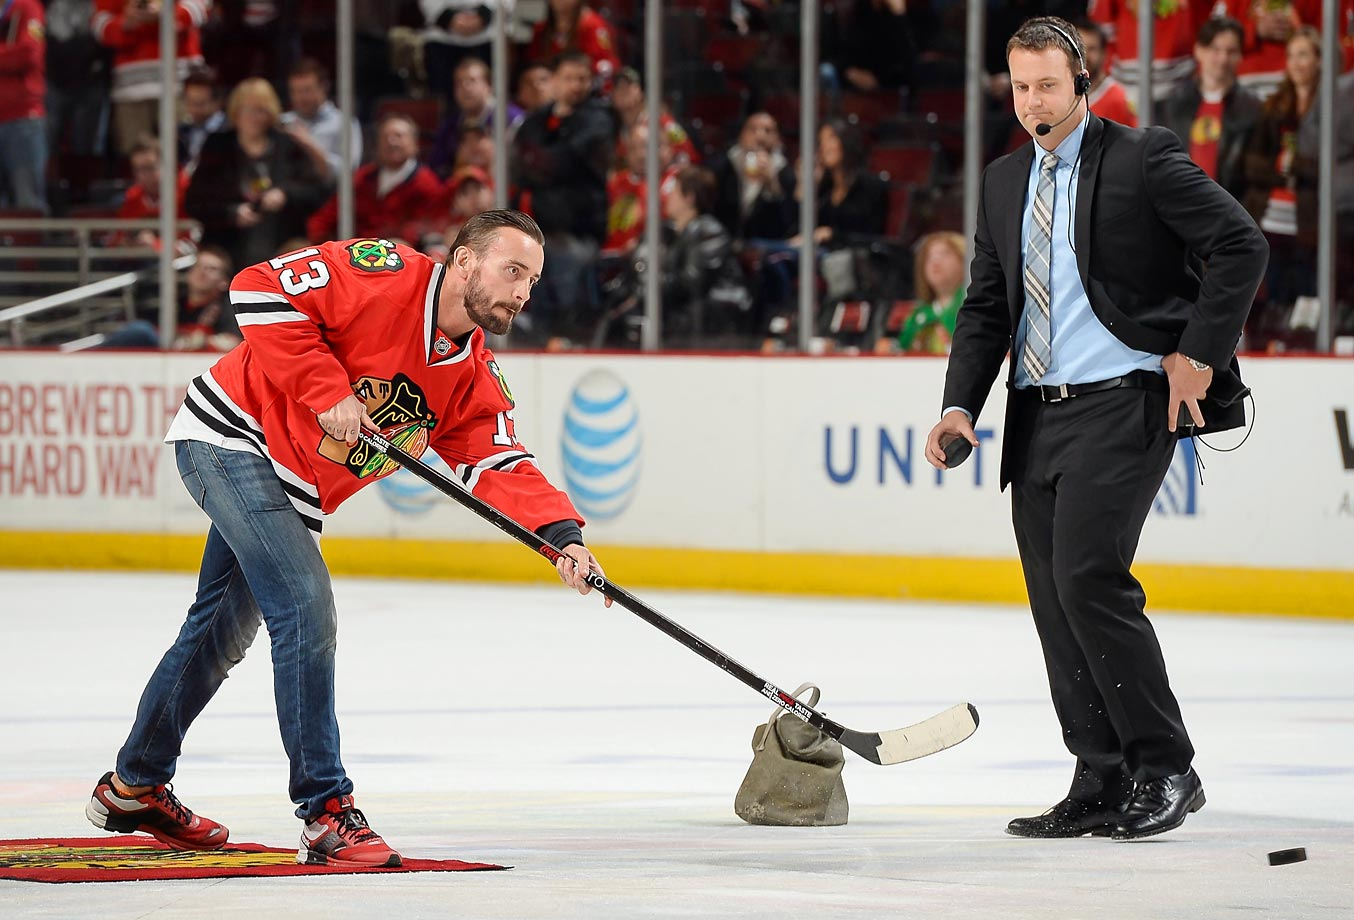 Former WWE wrestler CM Punk shoots the puck in between periods of the game between the Los Angeles Kings and the Chicago Blackhawks.